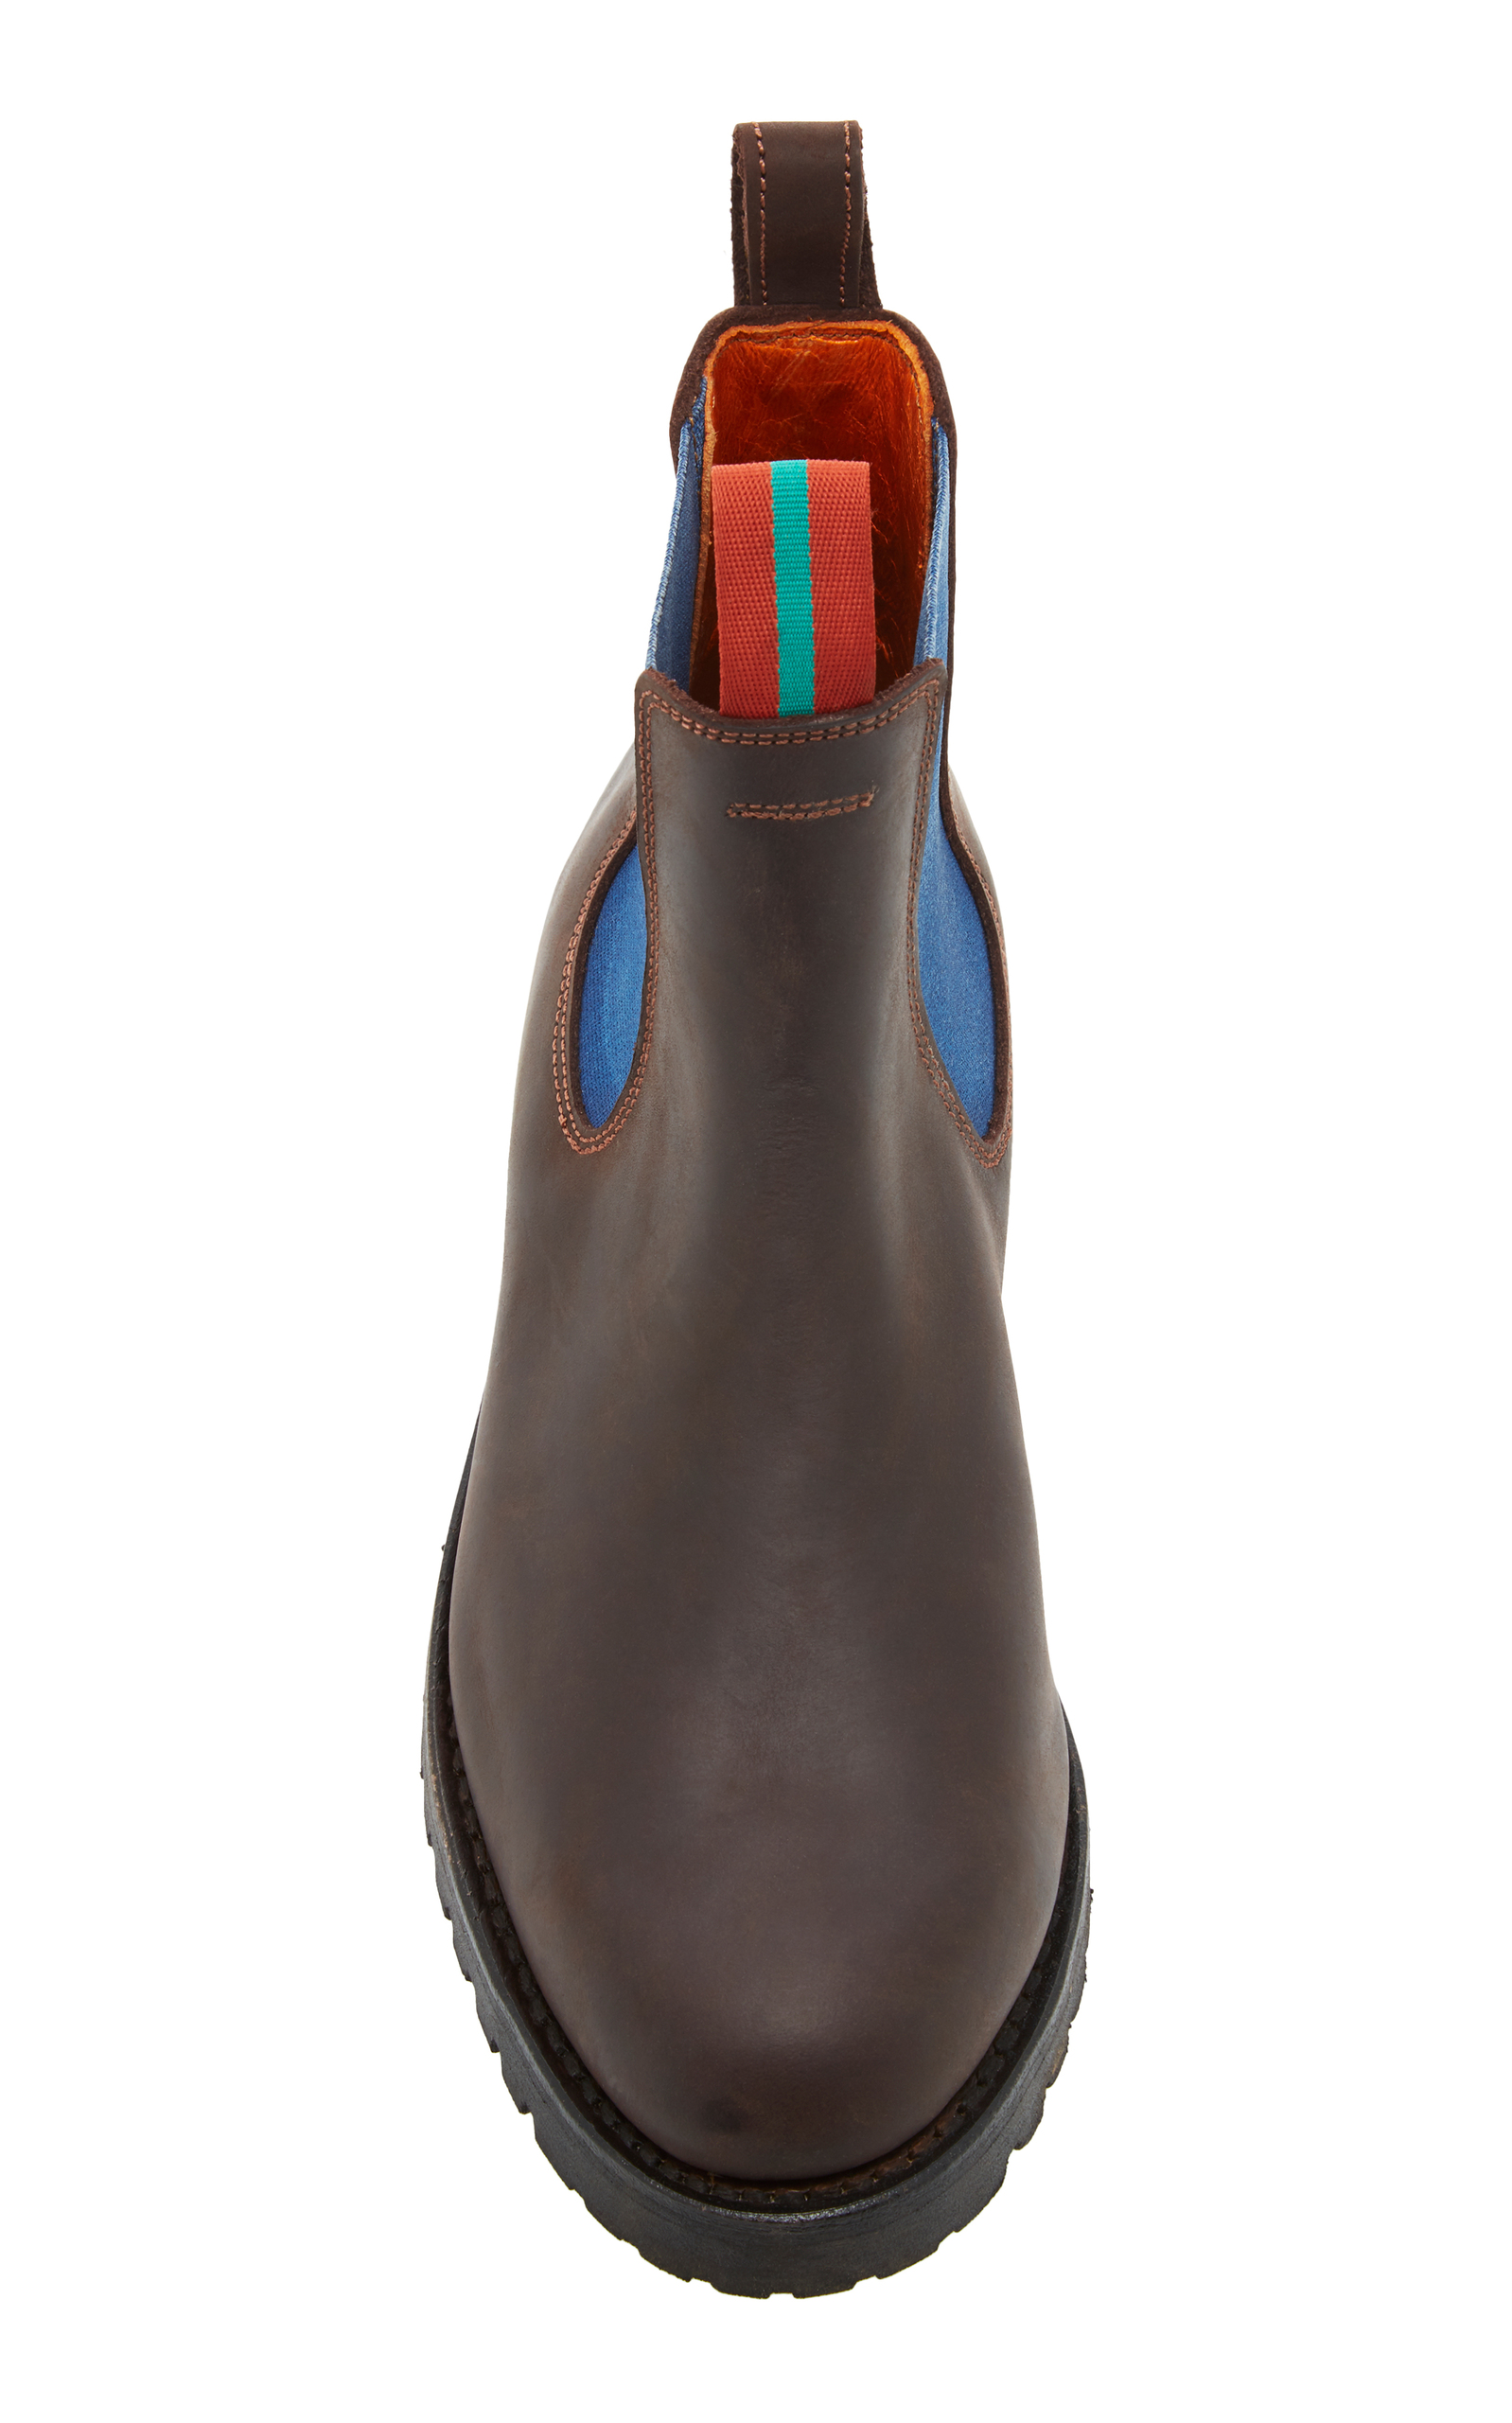 fcebb5142bd Penelope ChilversNelson Leather Boot. CLOSE. Loading. Loading